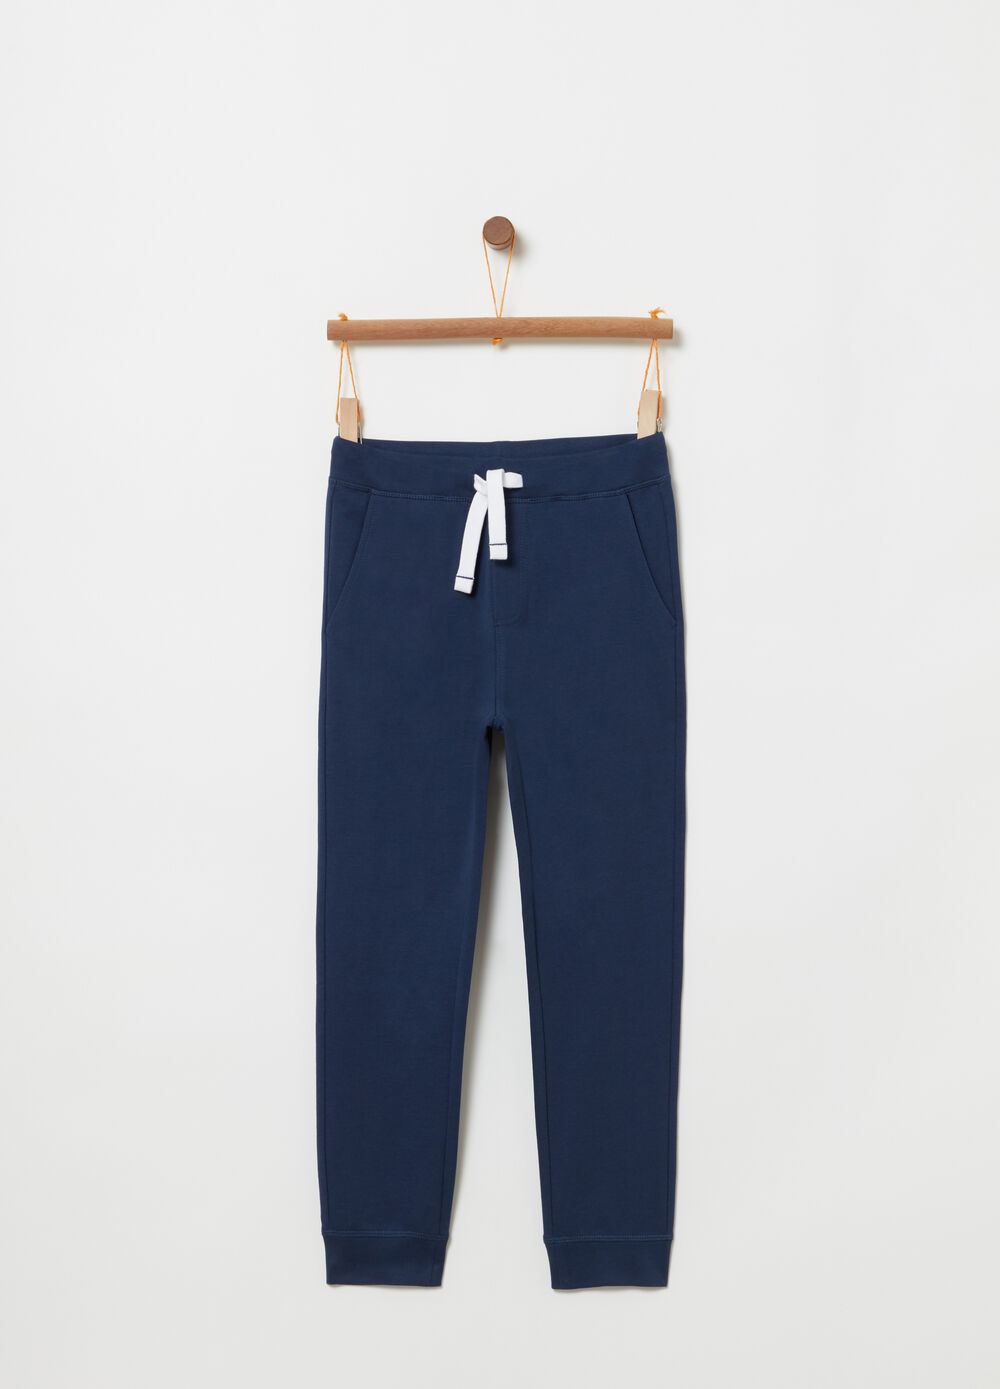 Pantalone regular fit coulisse a contrasto